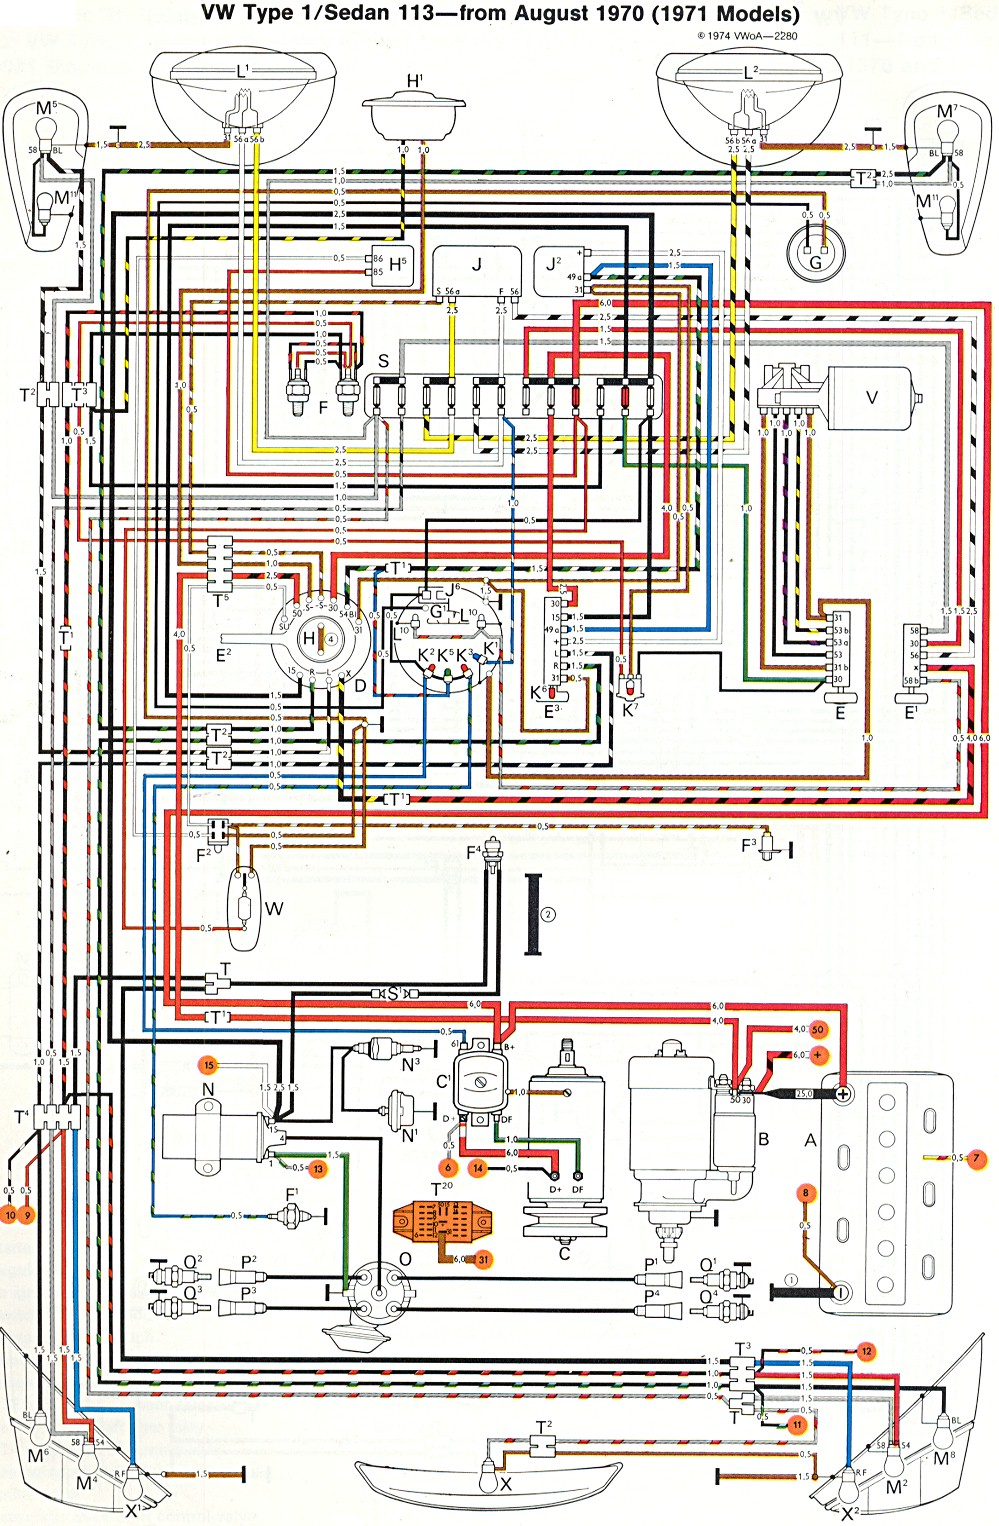 bug_super_71 2002 vw beetle wiring diagram altenator wiring diagram 2002 vw Wiring Harness Diagram at virtualis.co